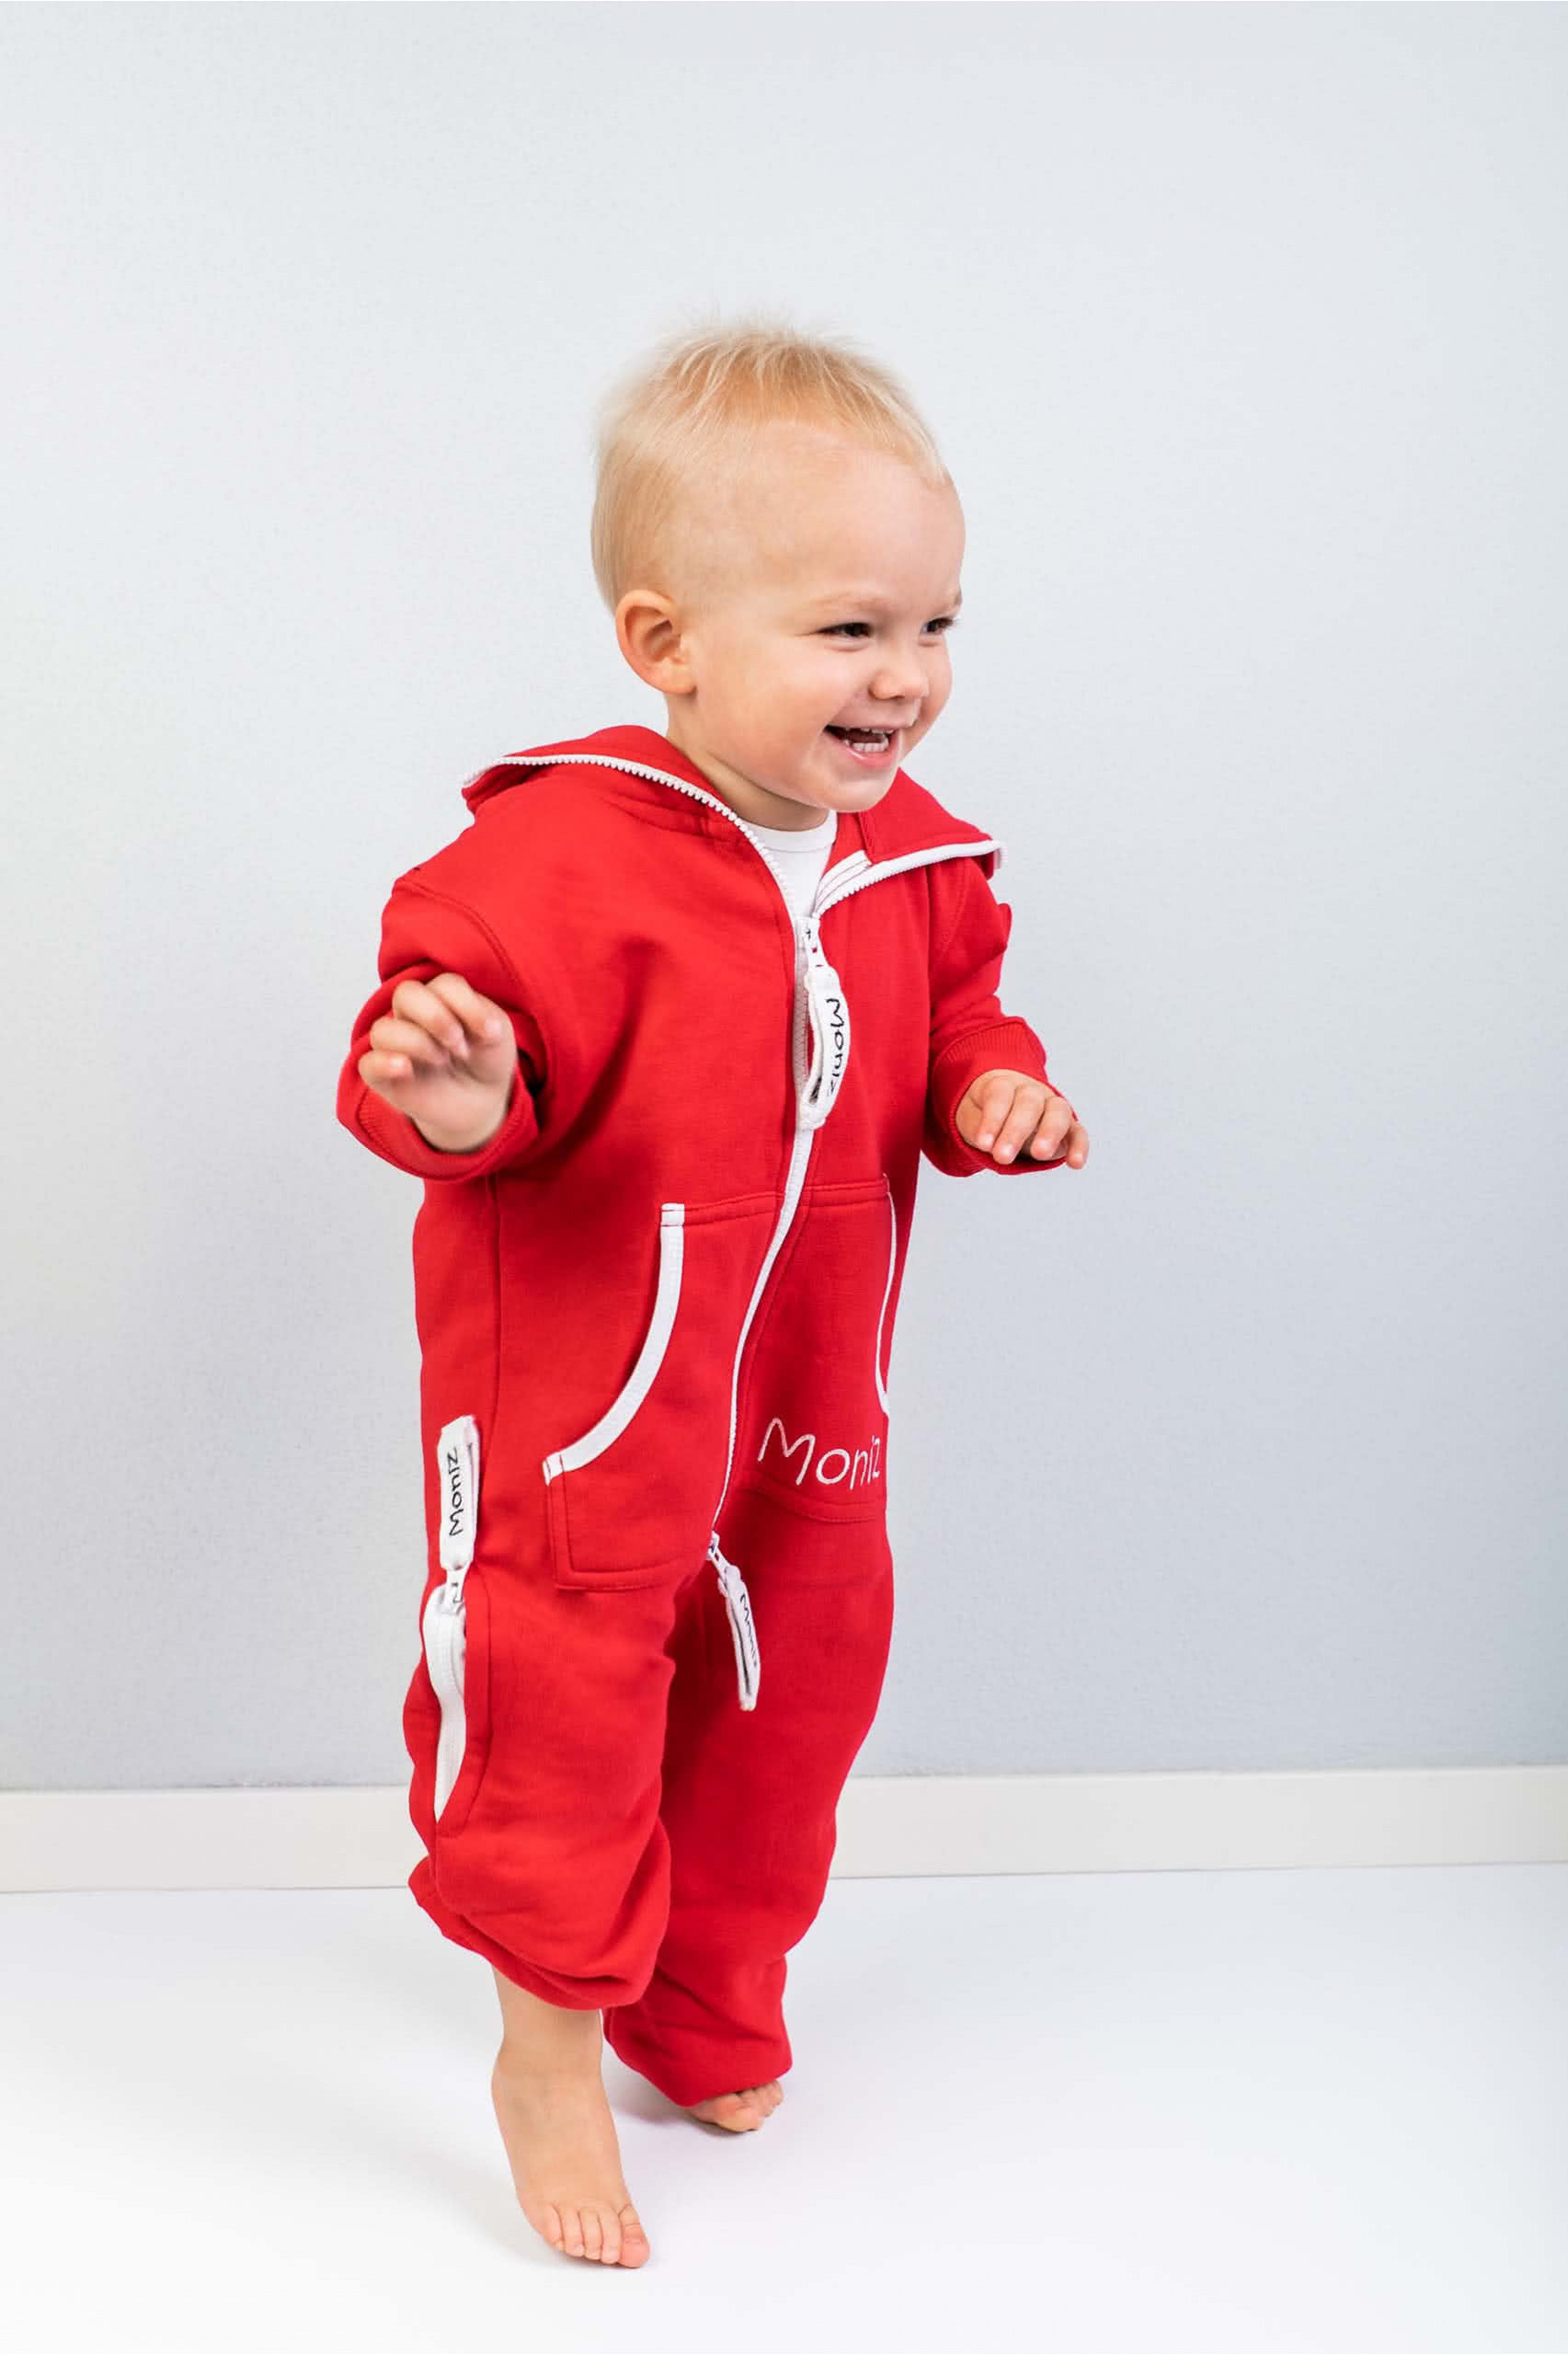 Moniz Baby Jumpsuit